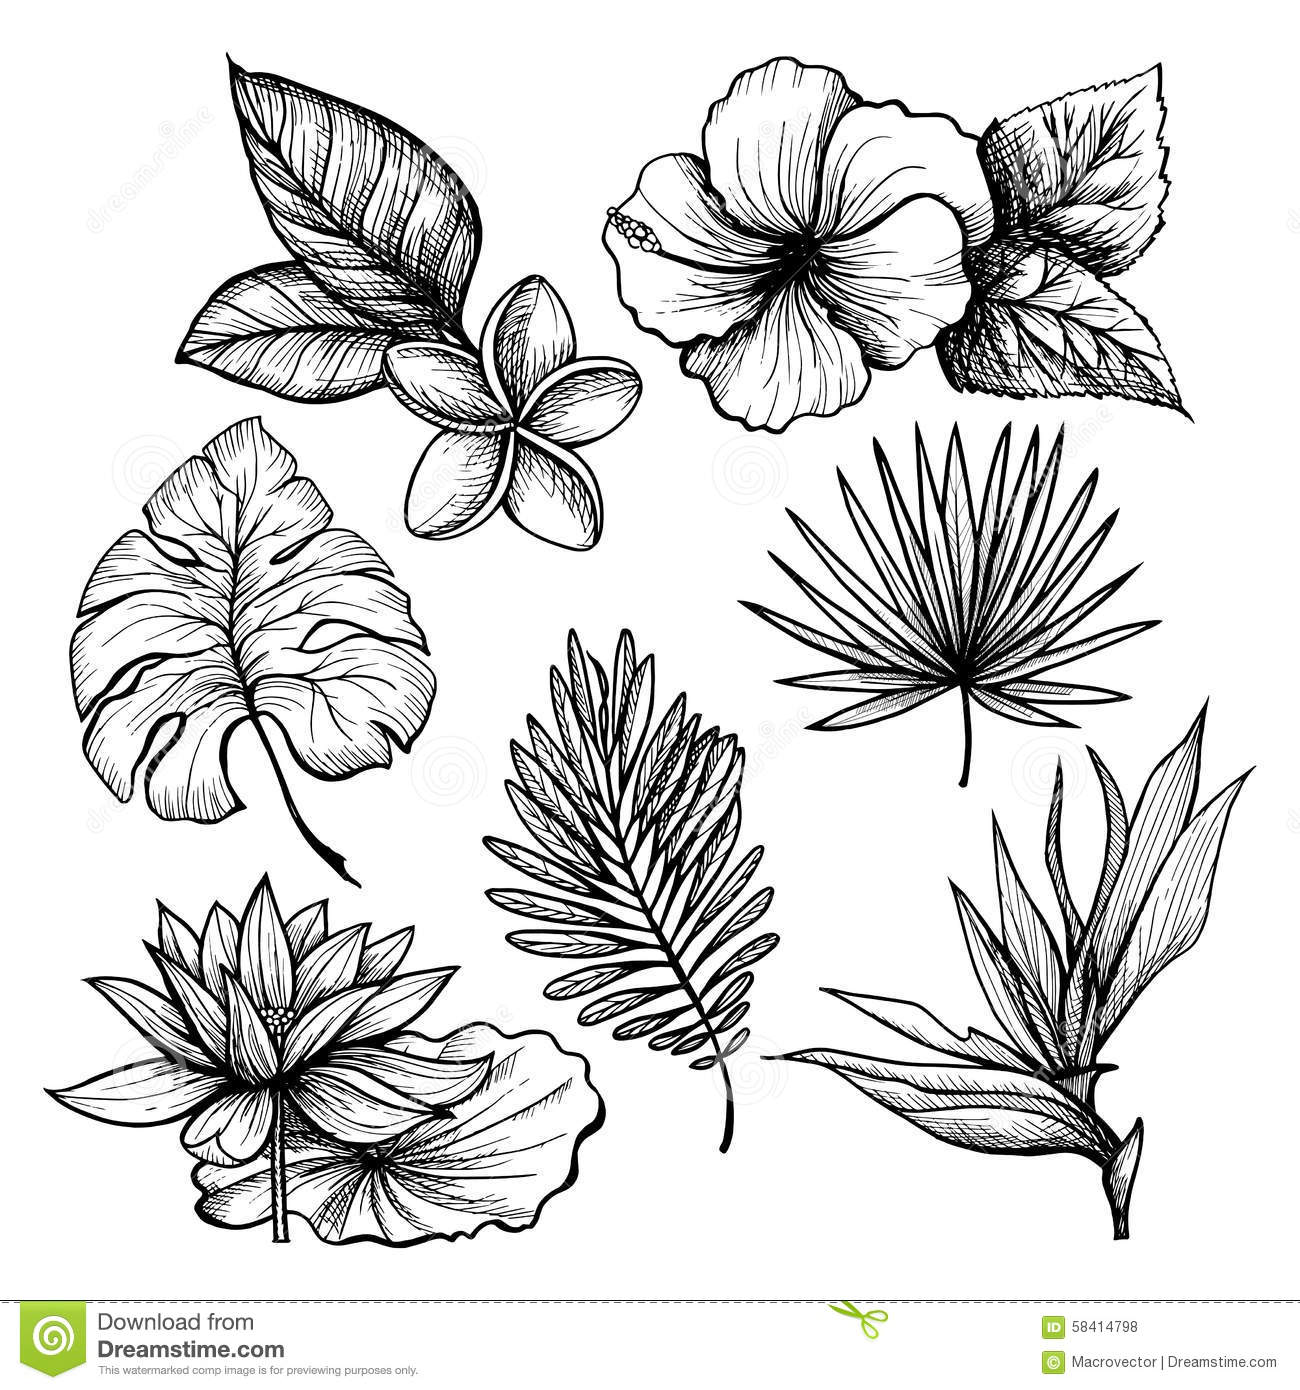 Tropical Flower Line Drawing : Tropical leaves set stock vector illustration of elements